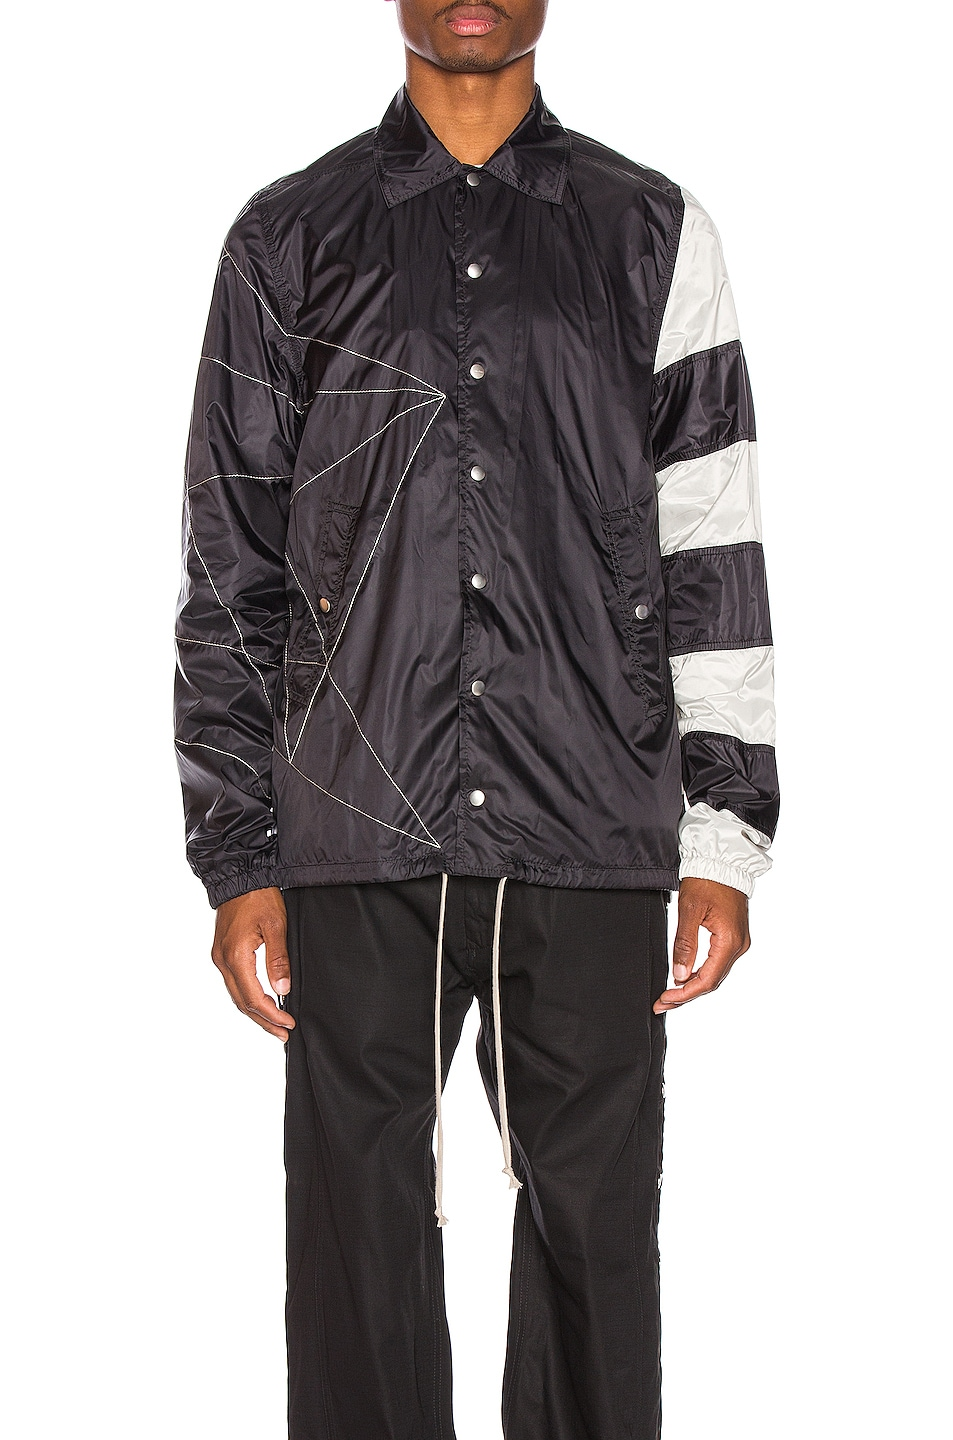 Image 2 of Rick Owens Snapfront Jacket in Black, Oyster & Pearl